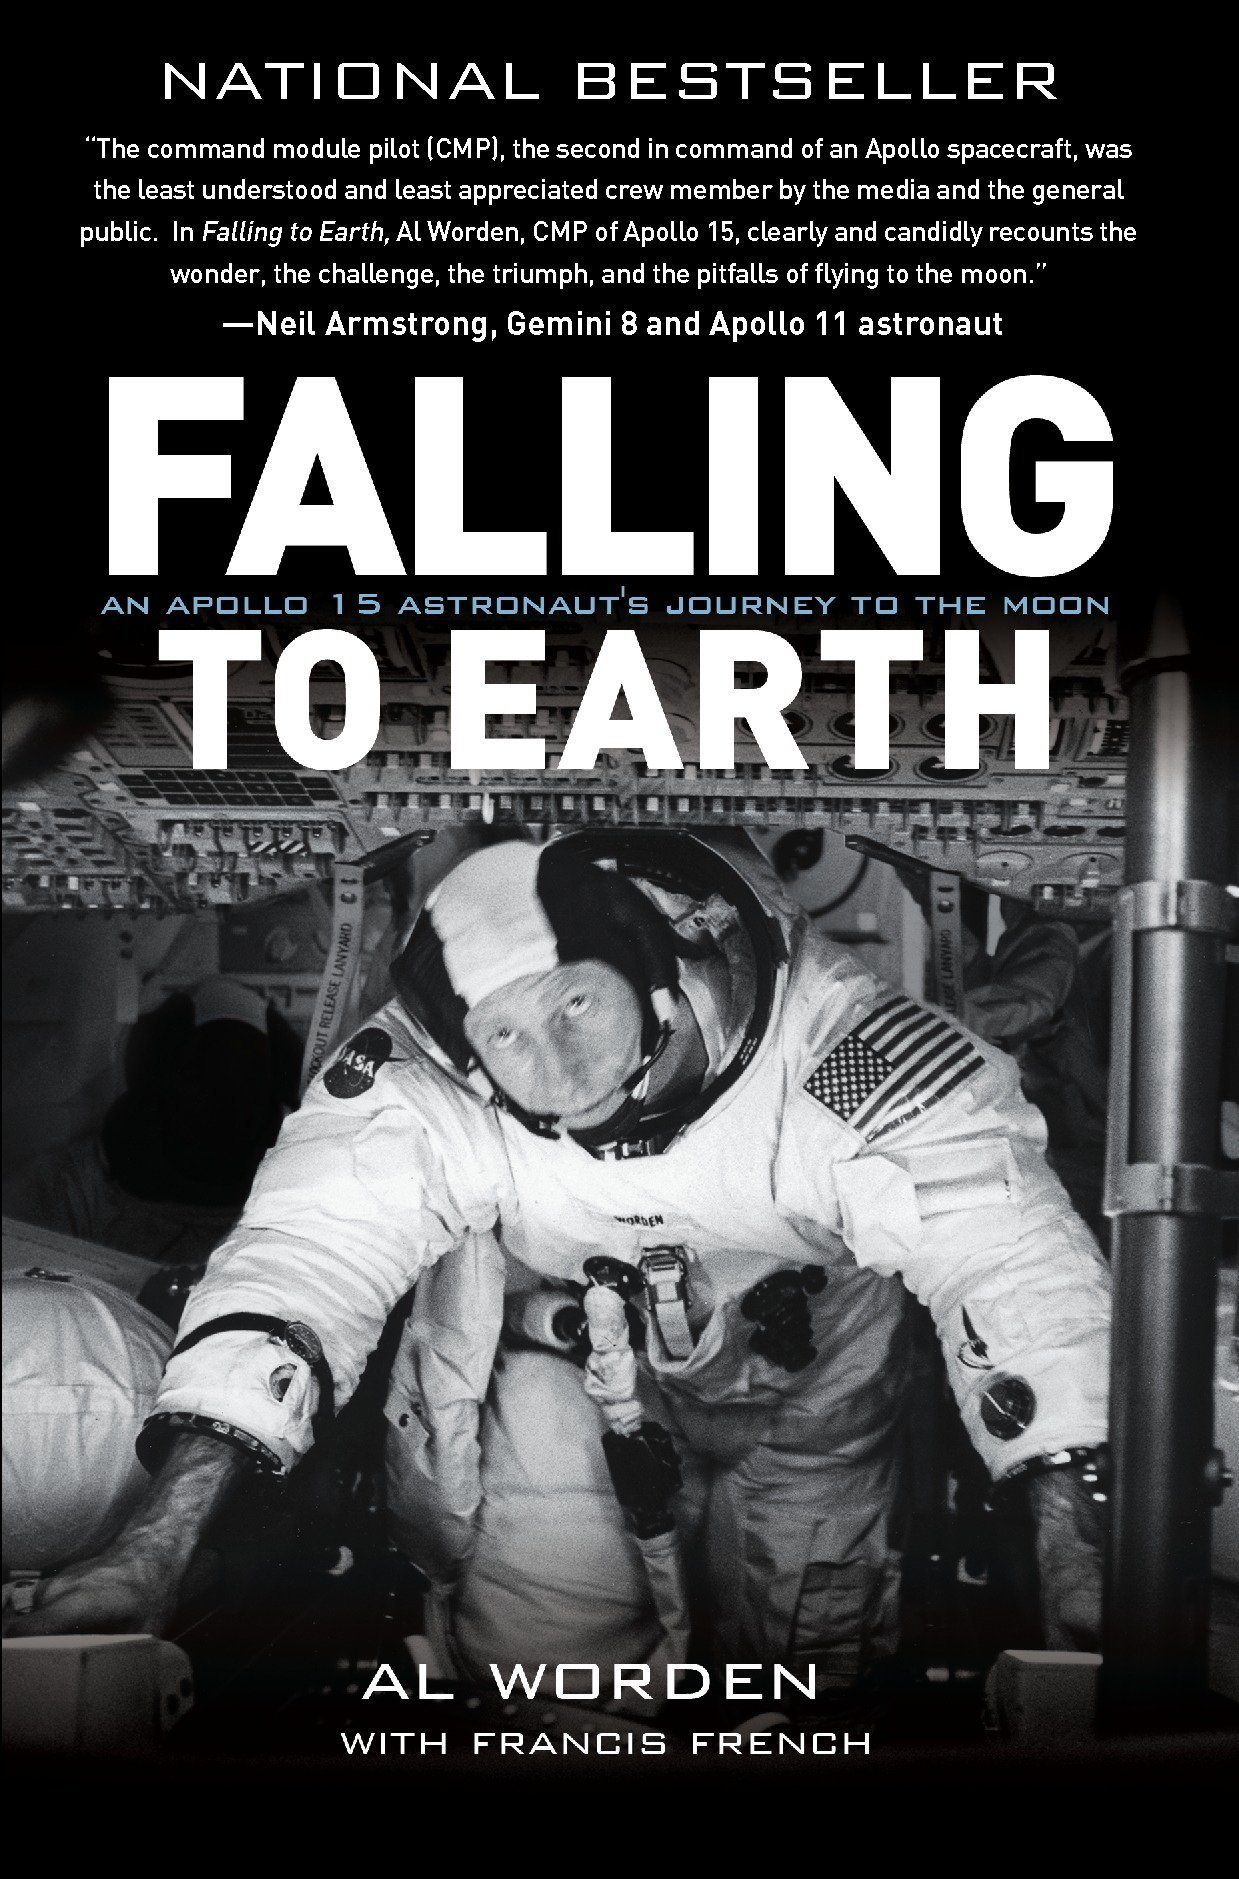 Falling to Earth - Click here for extras from Falling to Earth